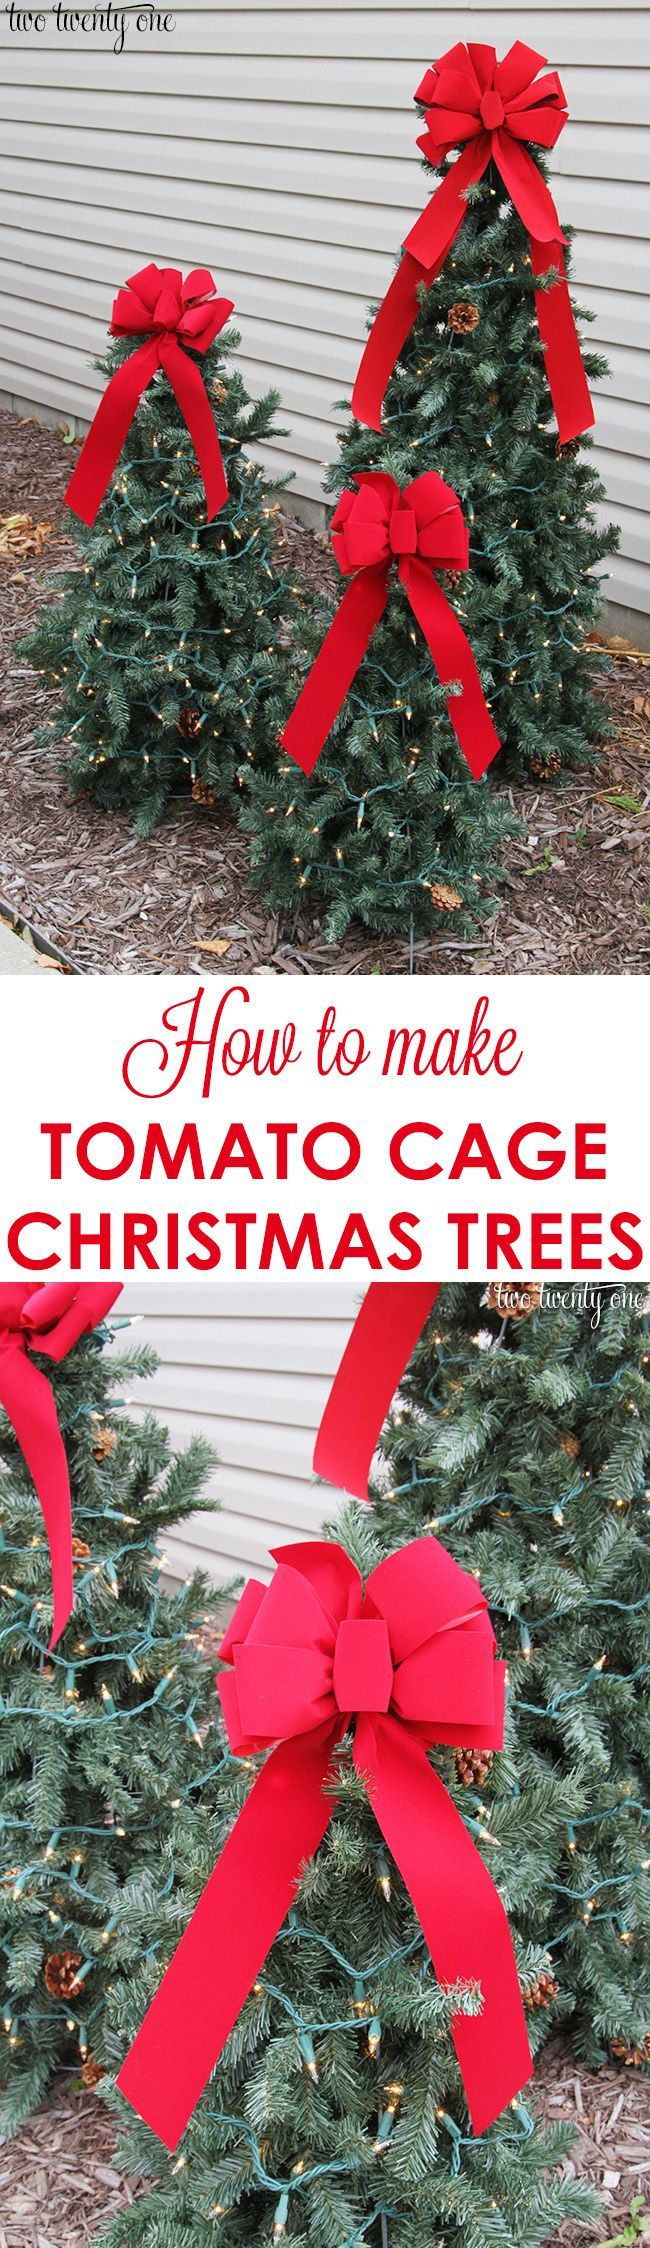 How to make tomato cage Christmas trees! **To ensure trees don't blow over, I would attach a cinder block or something heavy inside the tomato cage before assembling the tree.